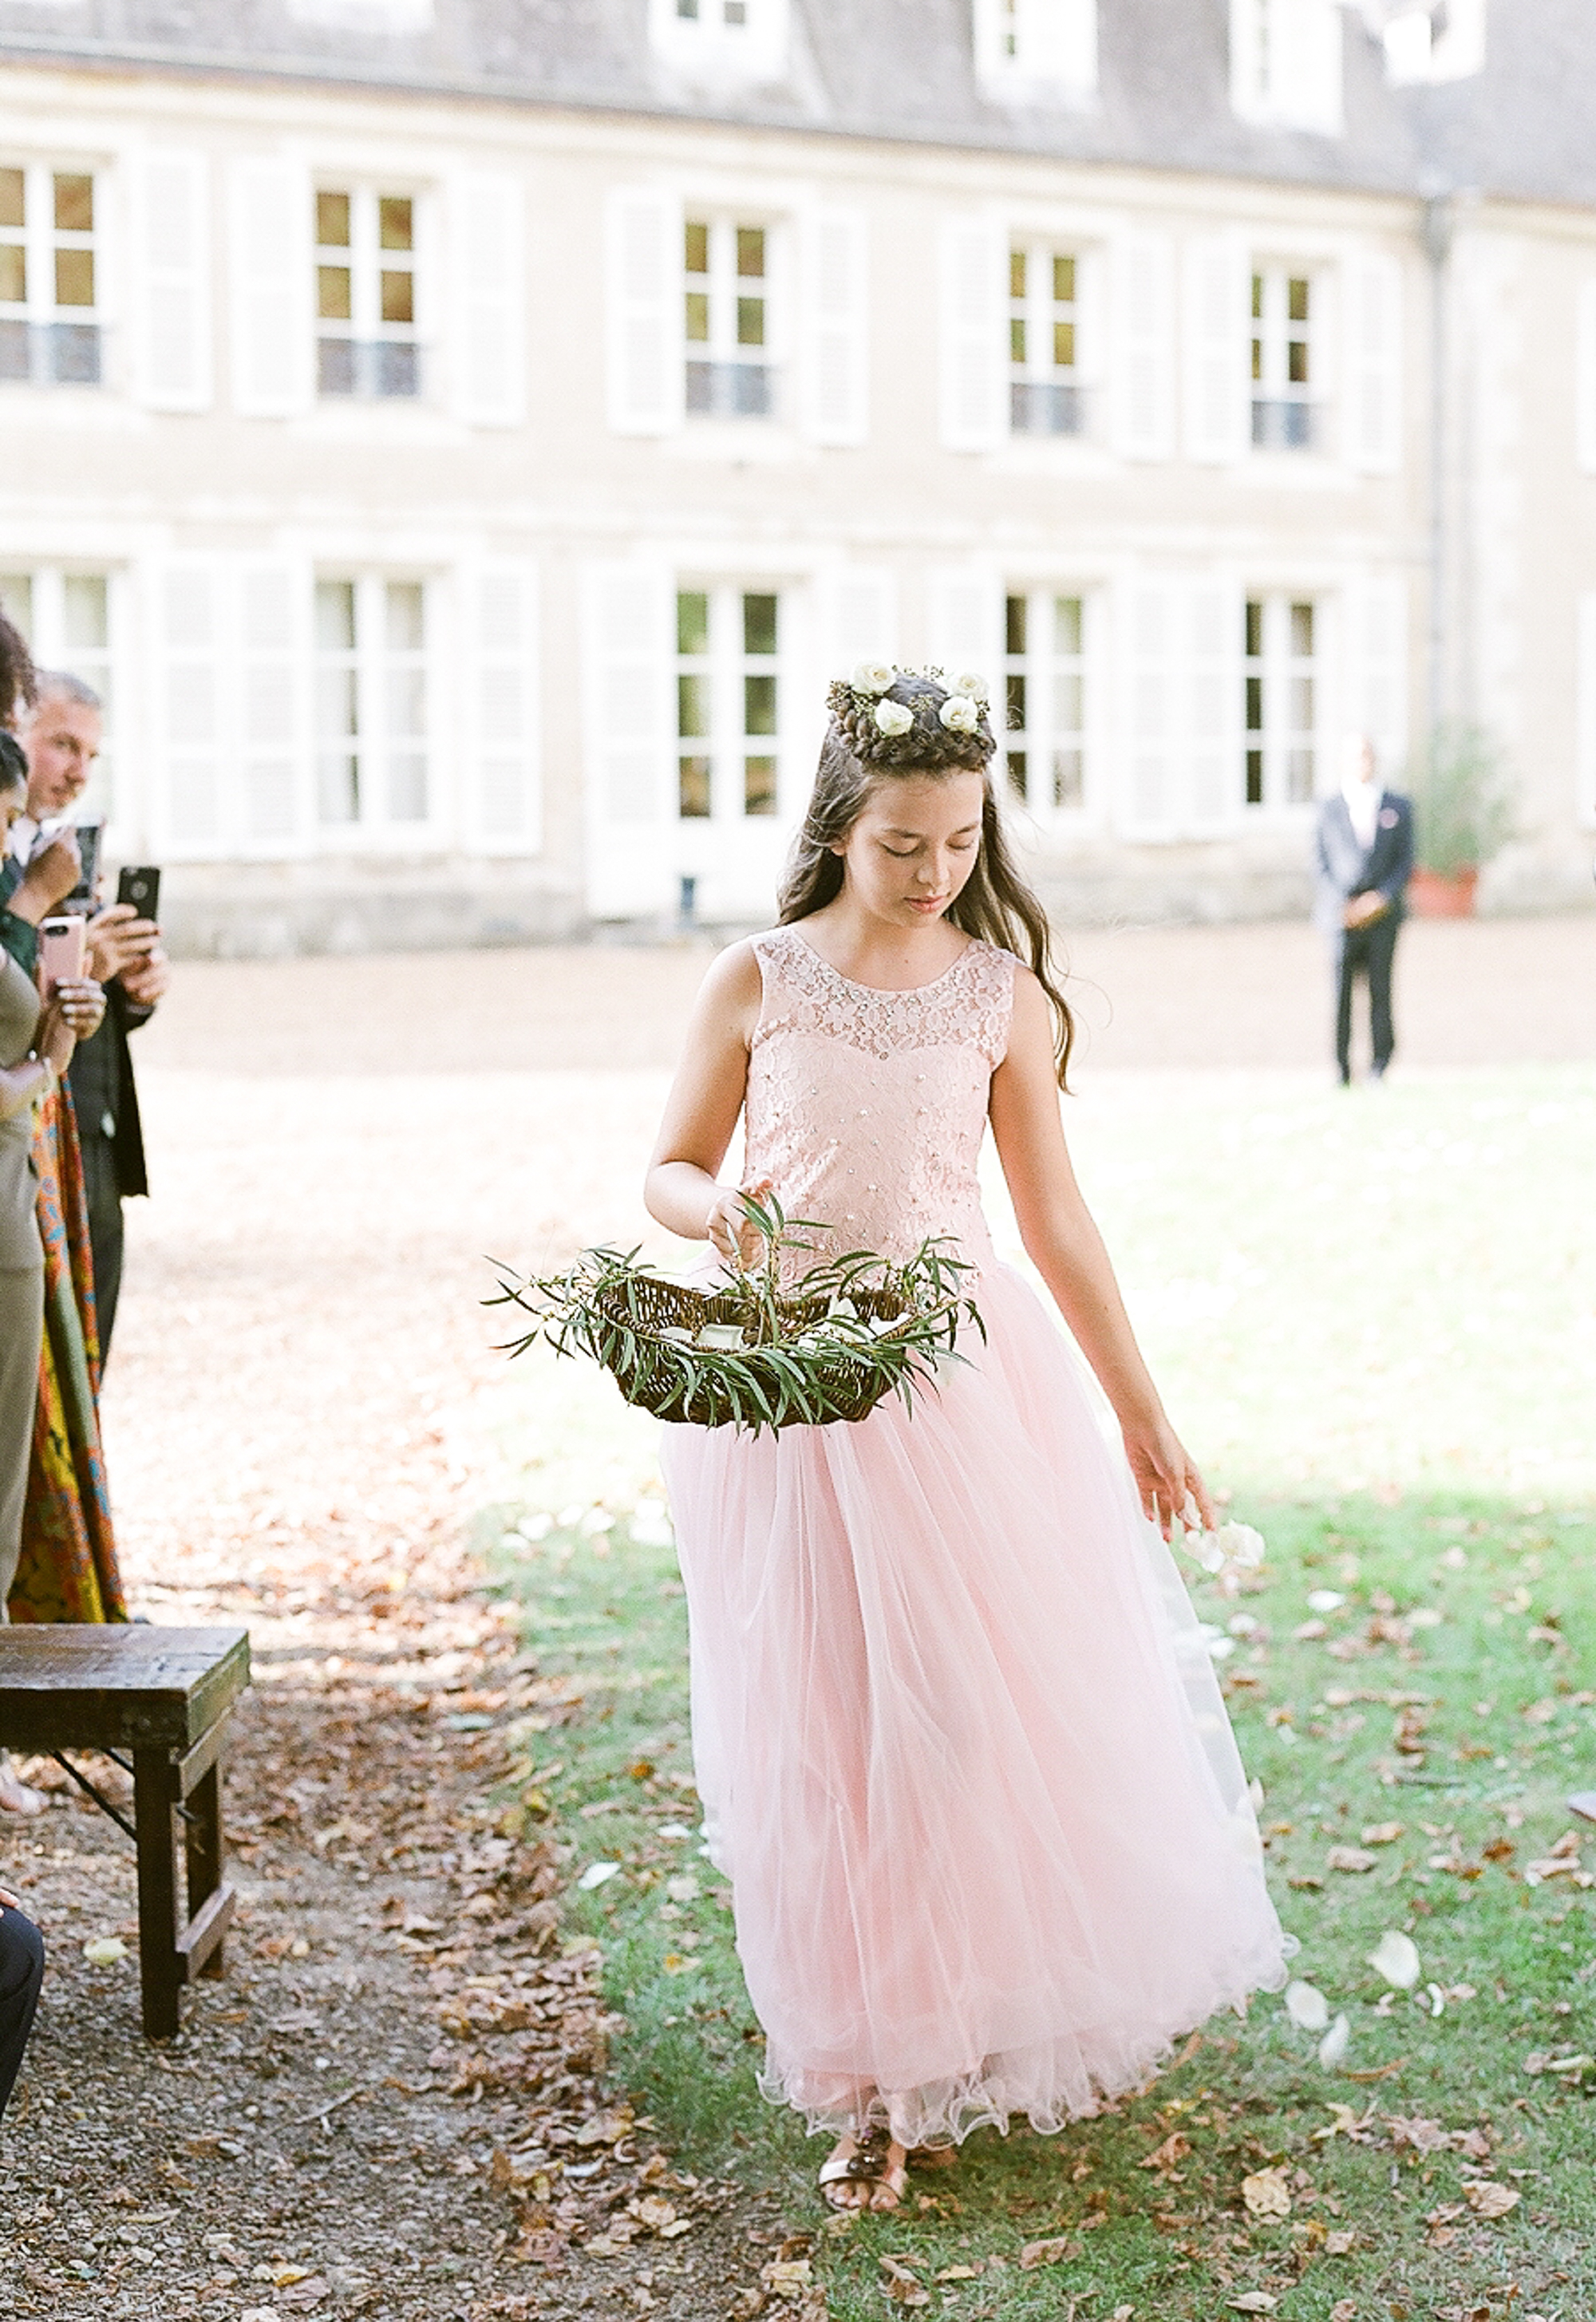 flower girl holding brown wicker basket with greenery